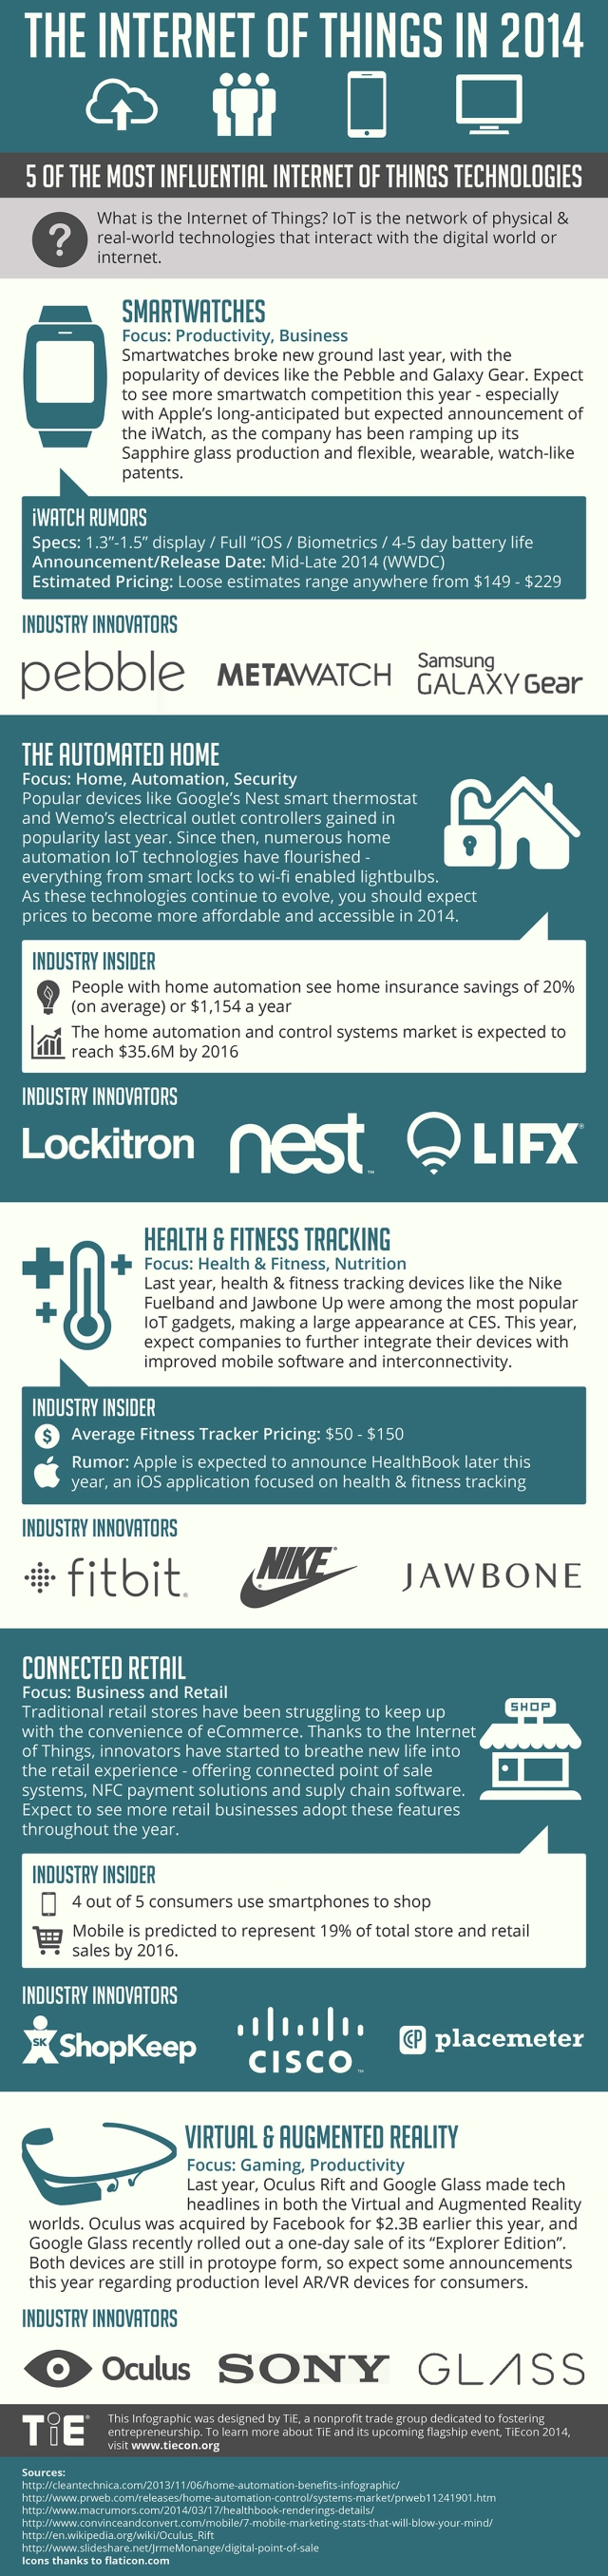 Final-IoT-2014-Infographic2